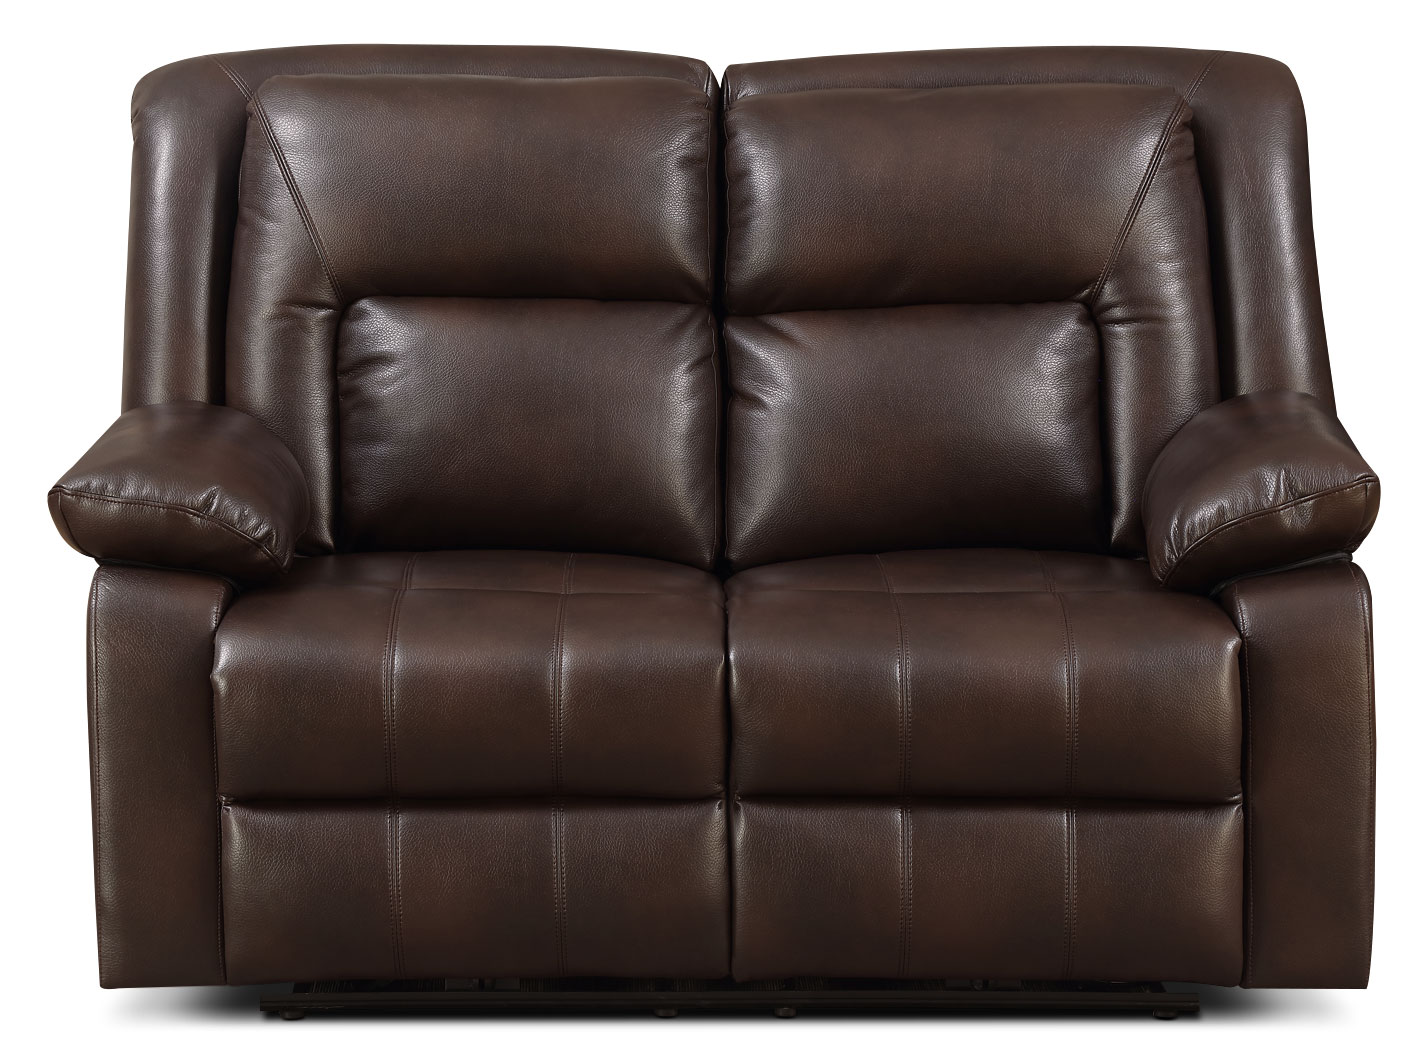 Living Room Furniture - Blane Leather-Look Fabric Power Reclining Loveseat – Brown